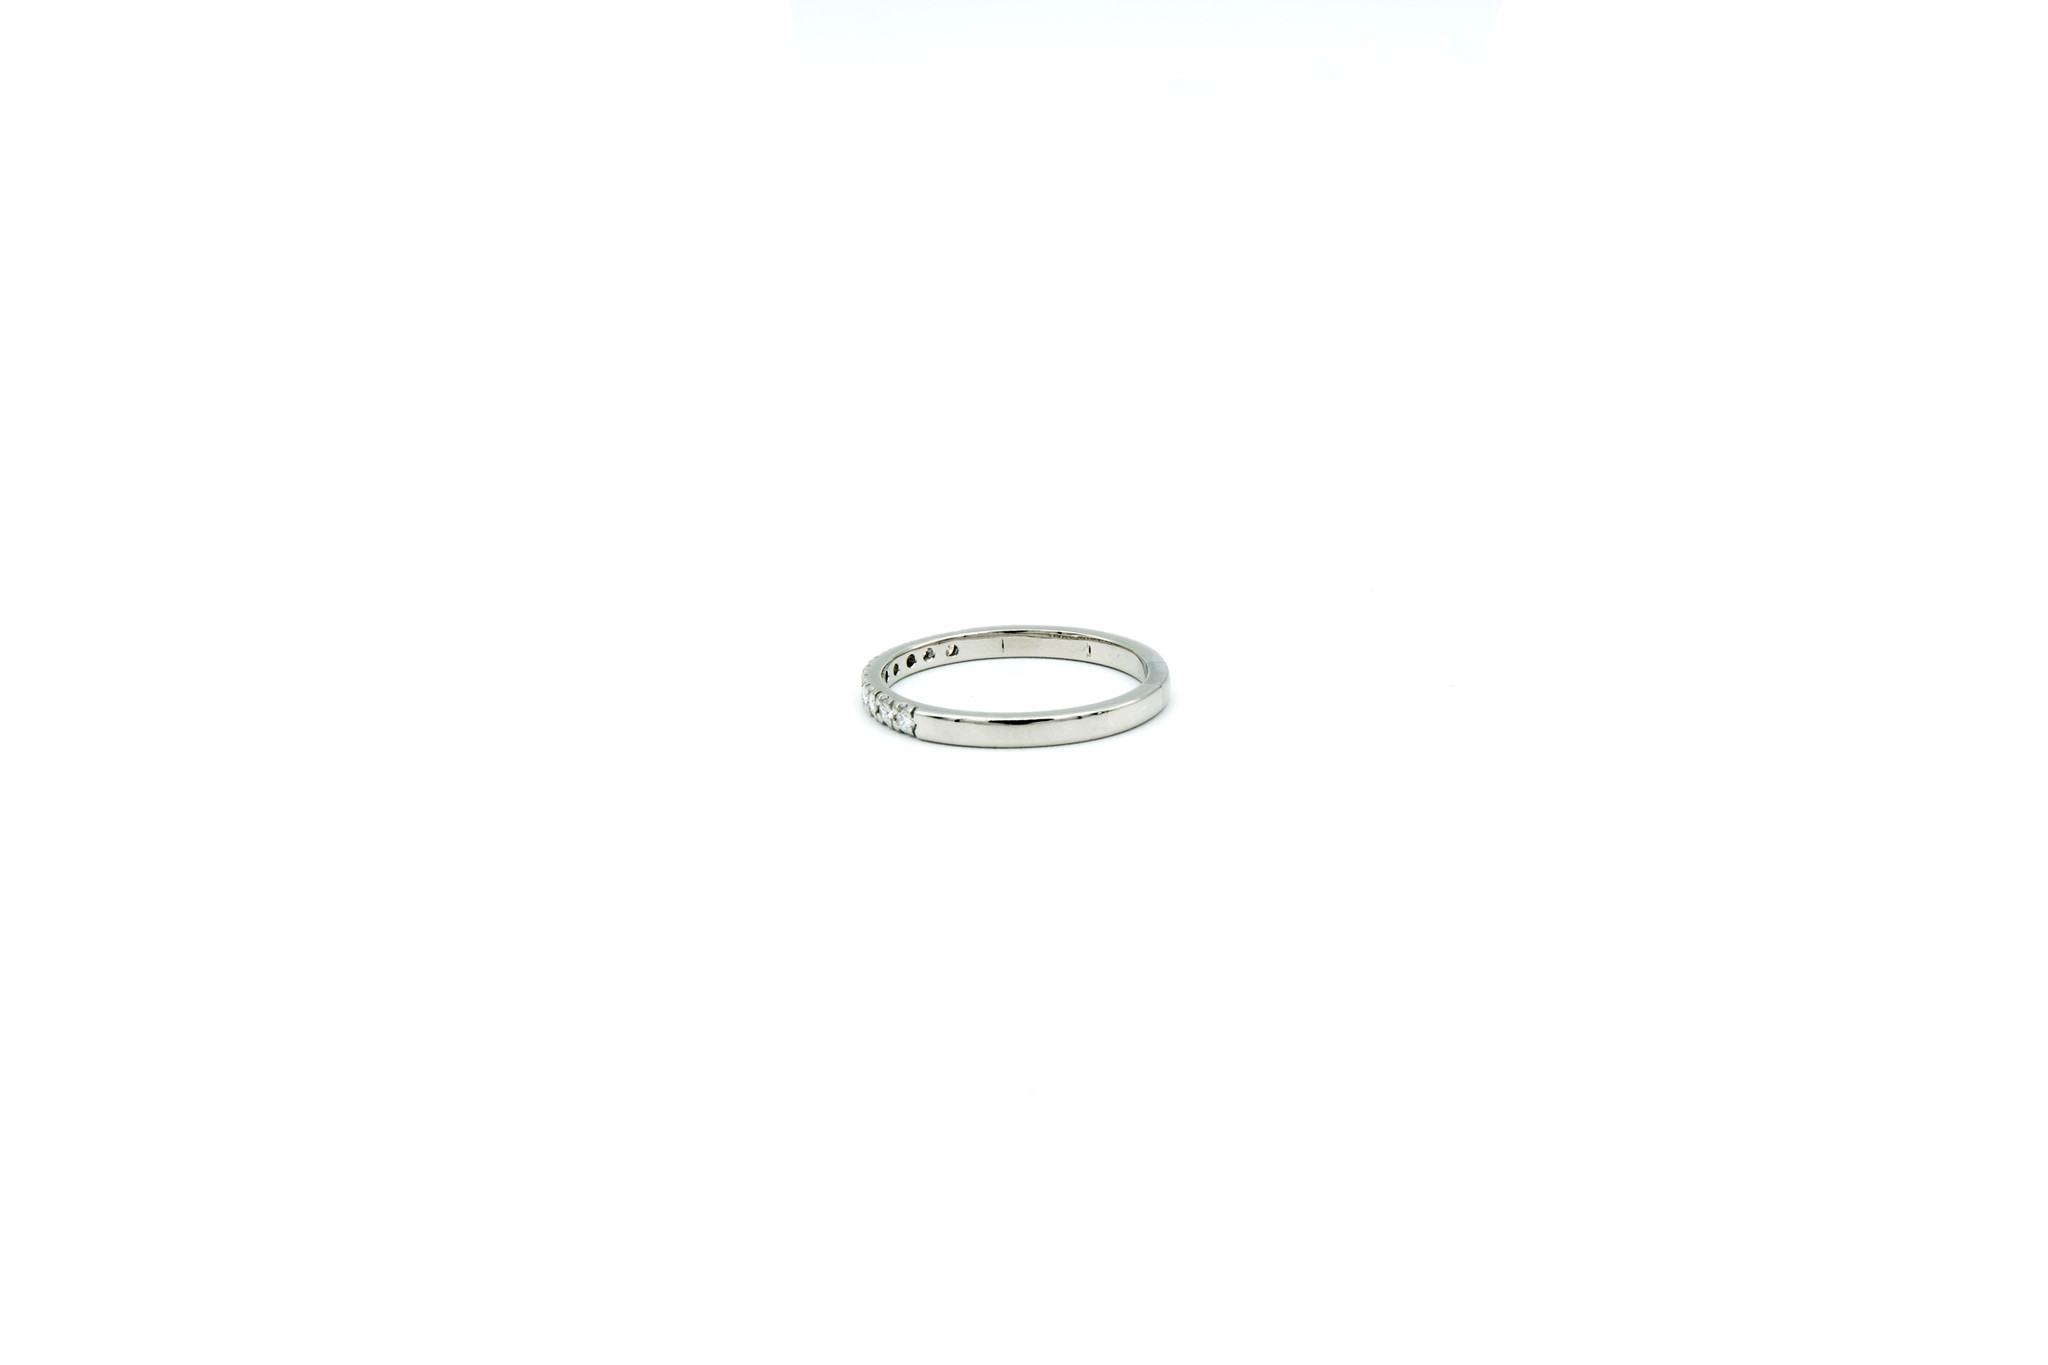 Ring smal met diamantjes-3